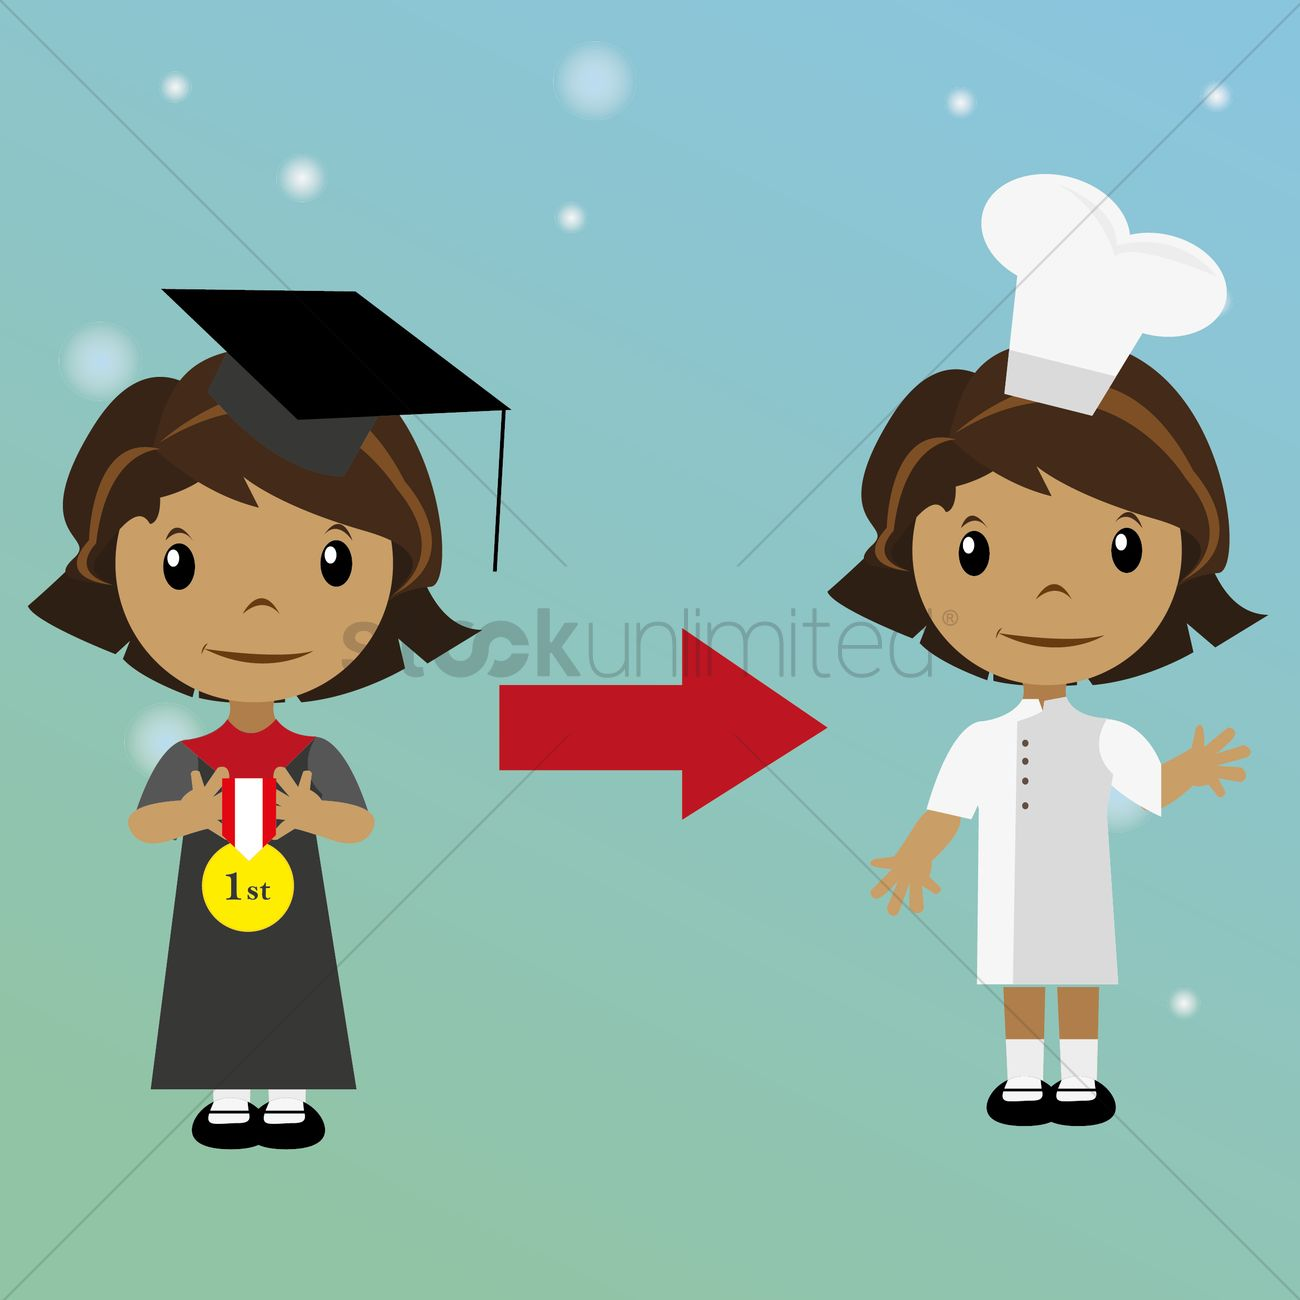 Free chef peru clipart images svg stock Free Graduate student choosing occupation as chef Vector Image ... svg stock